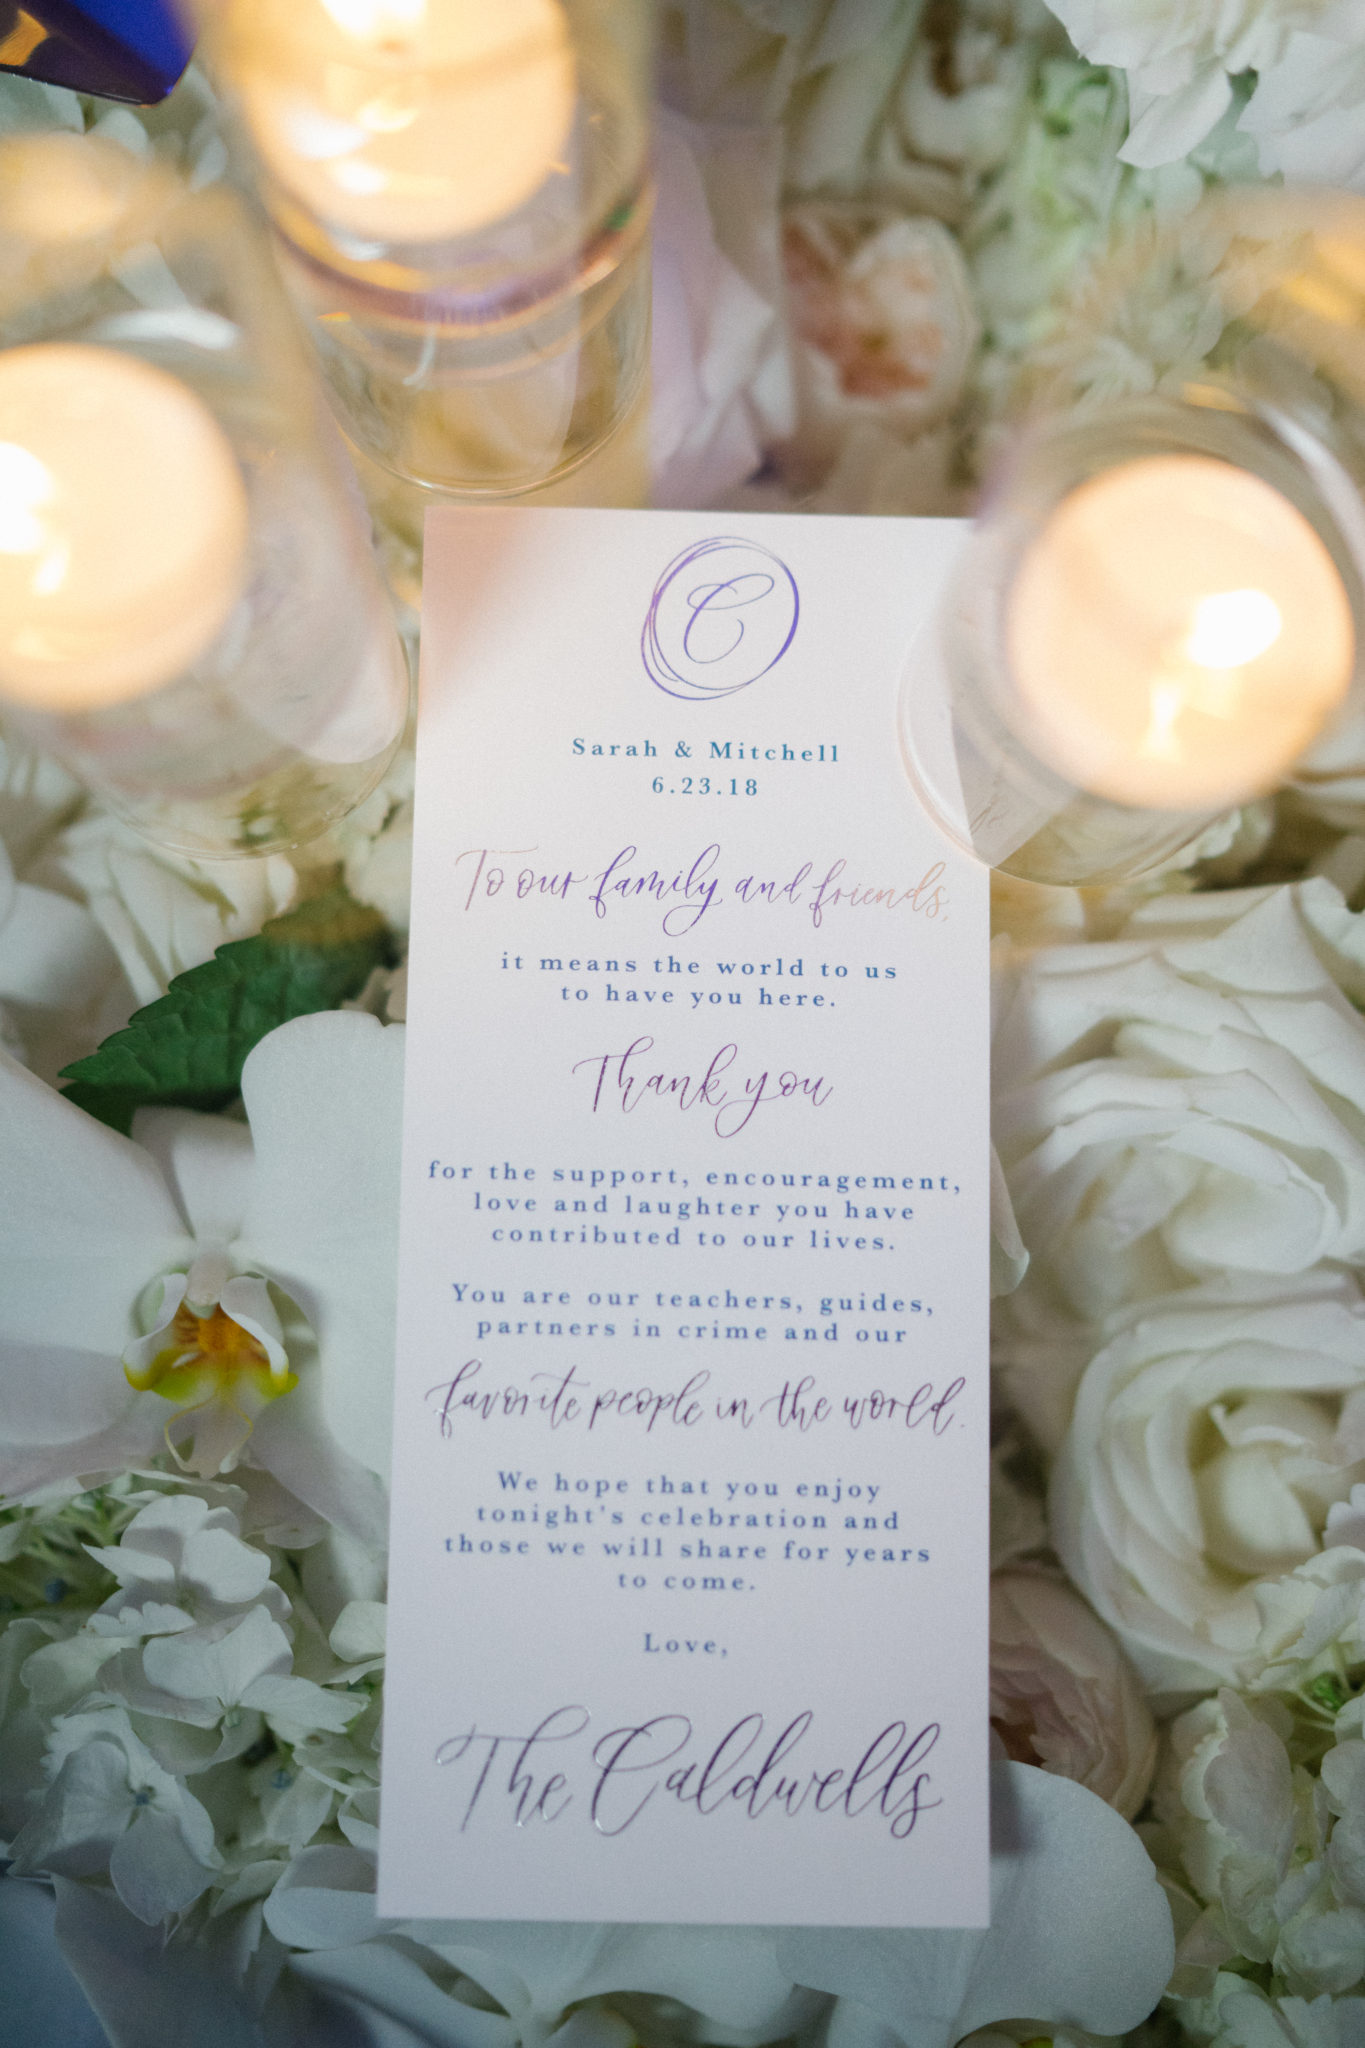 Hilton Waterfront - Sarah & Mitchell - Flowers by Cina